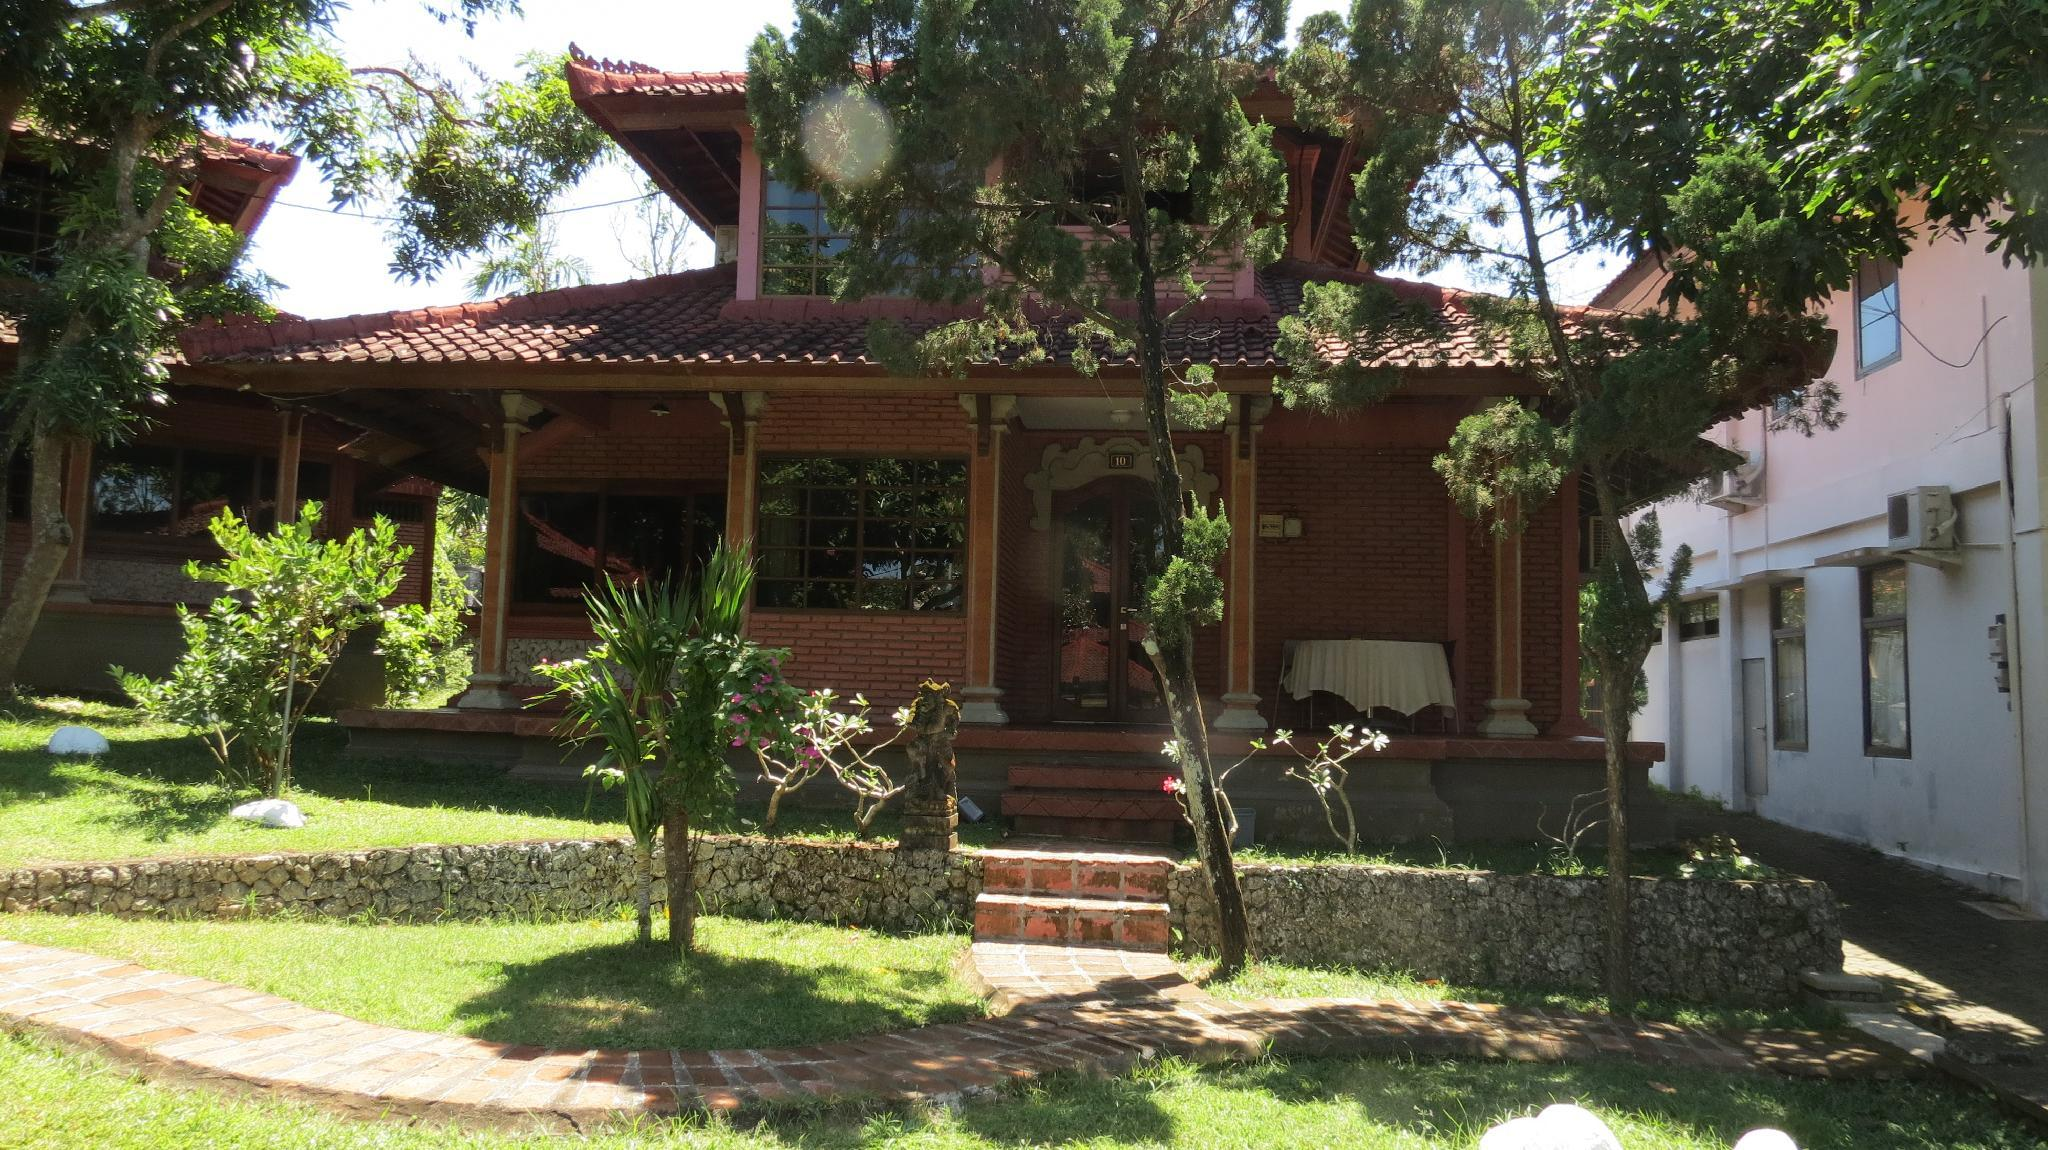 3 Bedroom Villa Nusa Dua